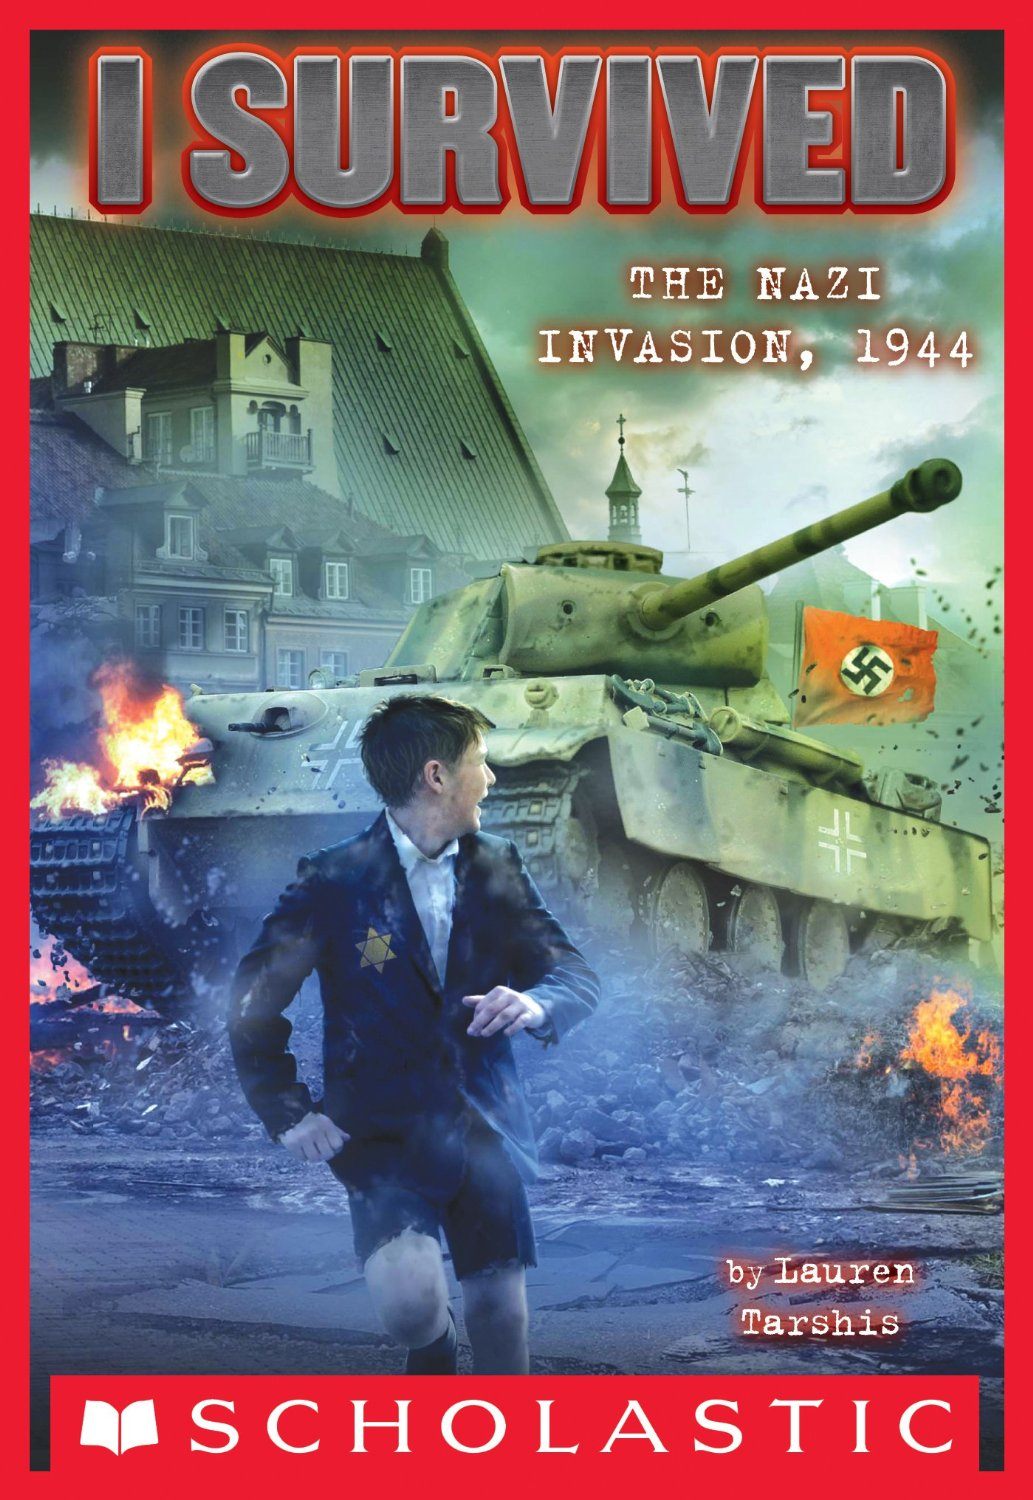 I Survived the Nazi Invasion 1944 Book Cover